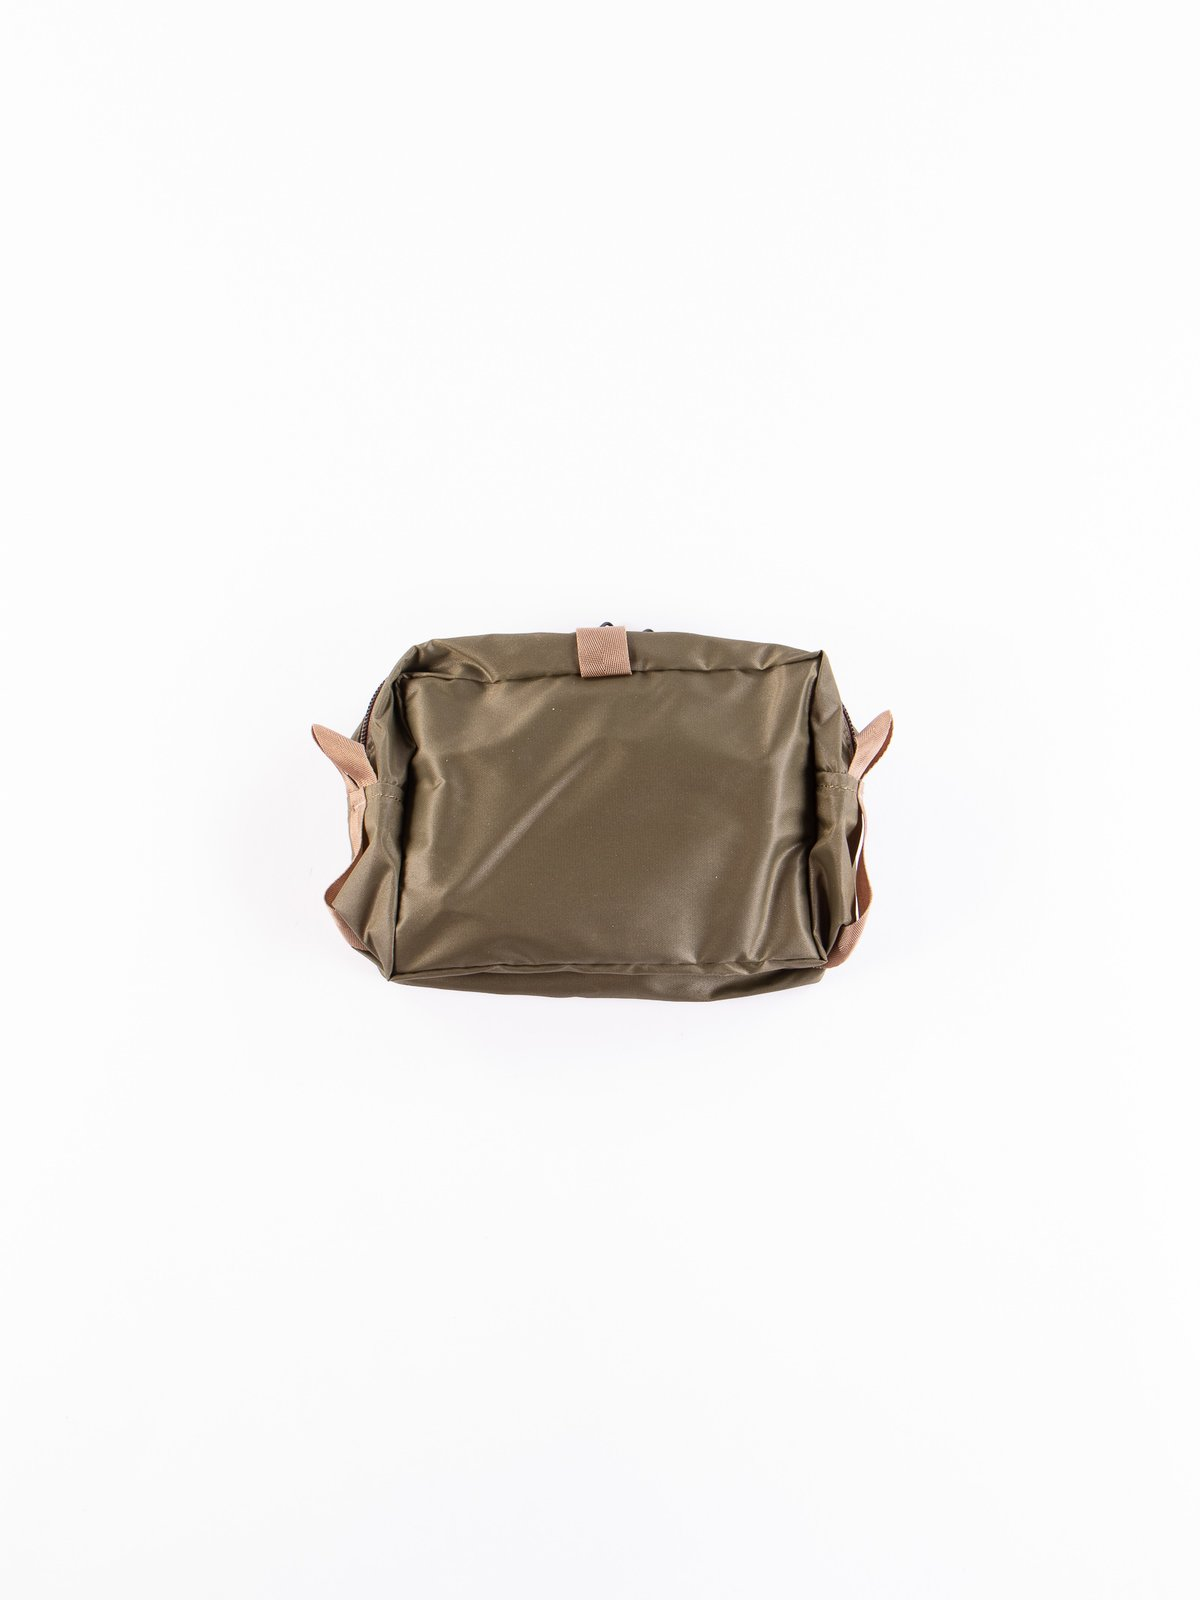 Olive Drab Snack Pack 09810 Pouch Small - Image 3